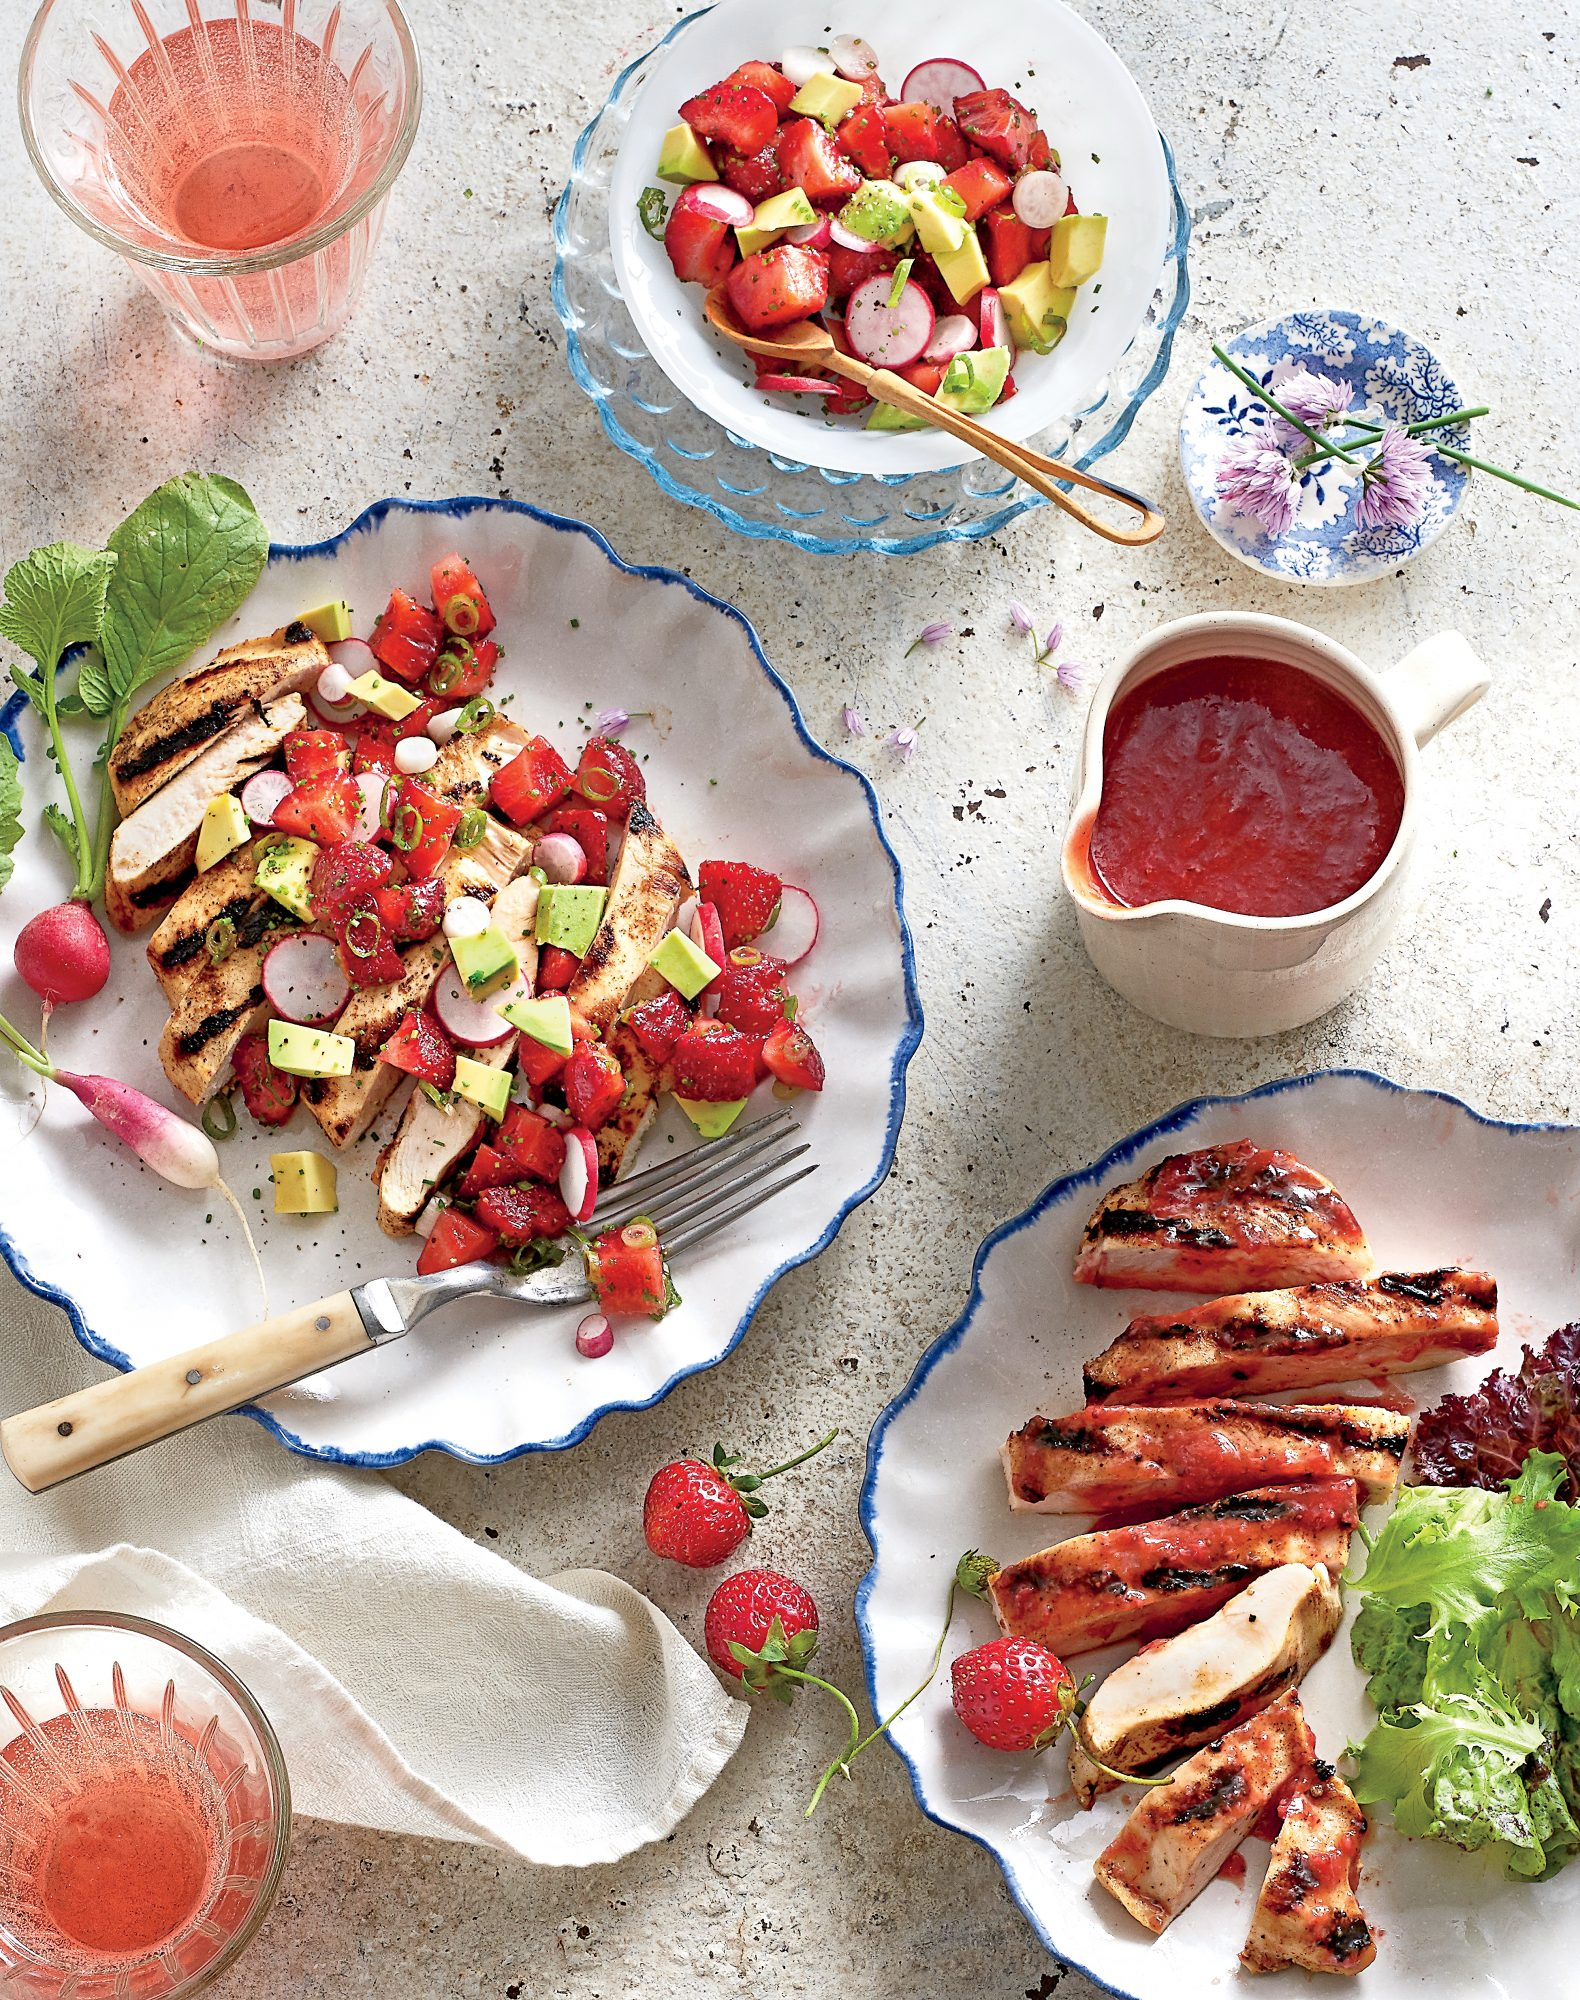 Tangy Strawberry BBQ Sauce